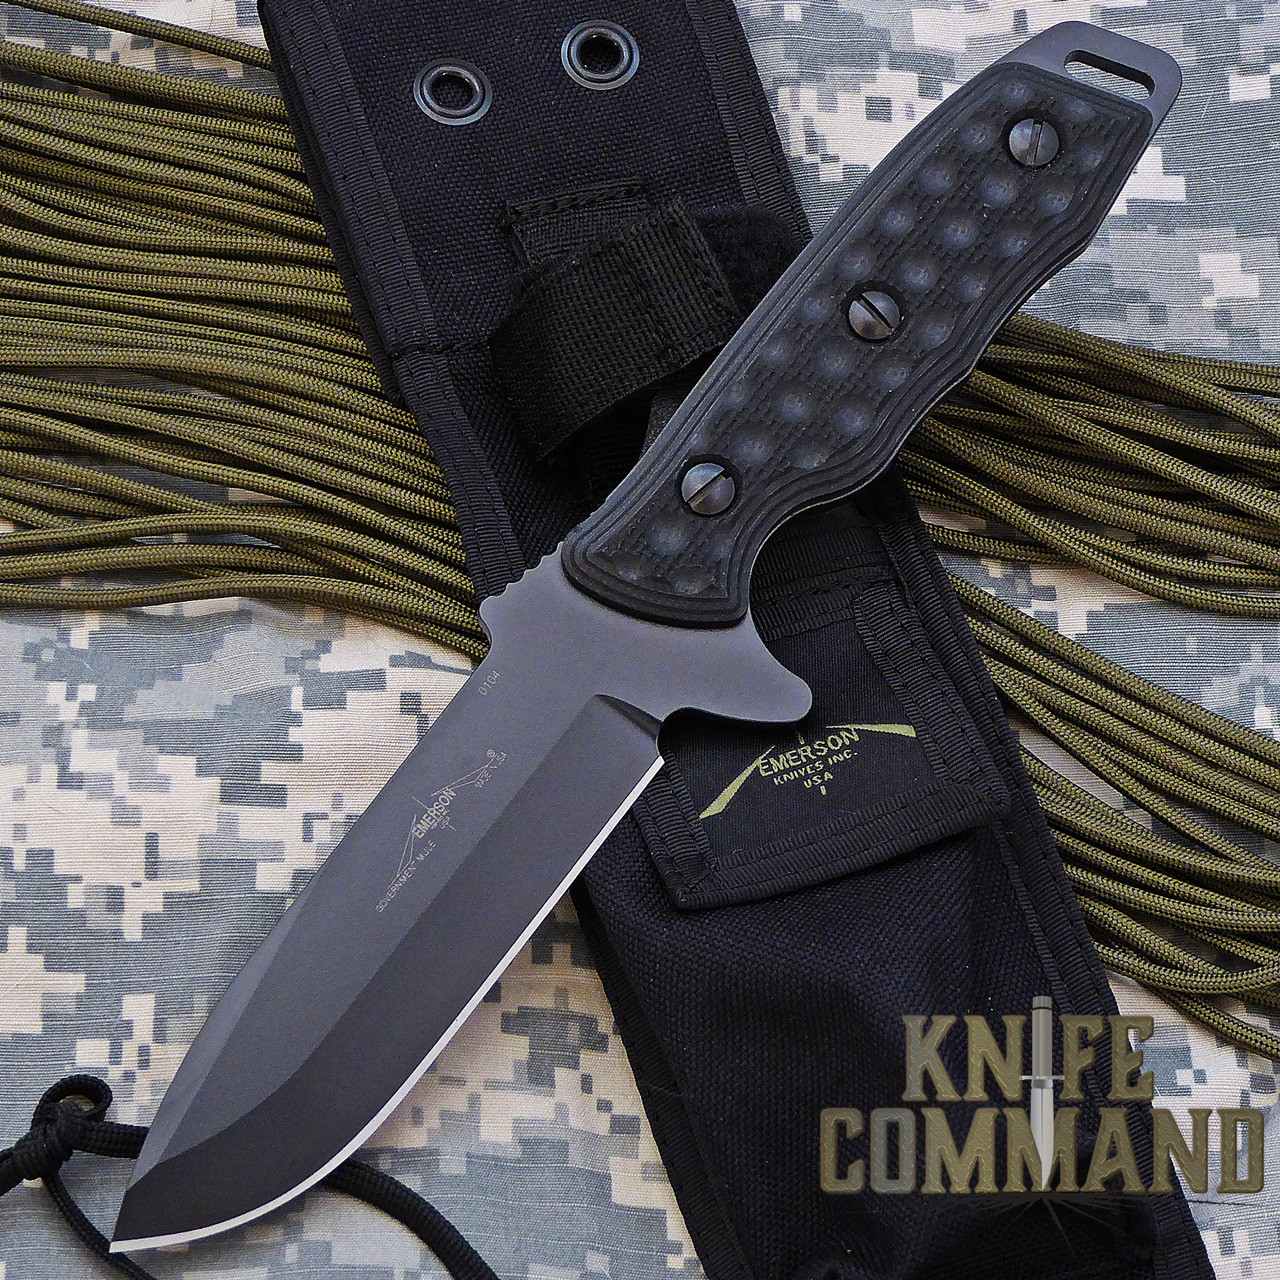 Emerson Government Mule Fixed Blade Knife BT.    When strength and reliability matters.